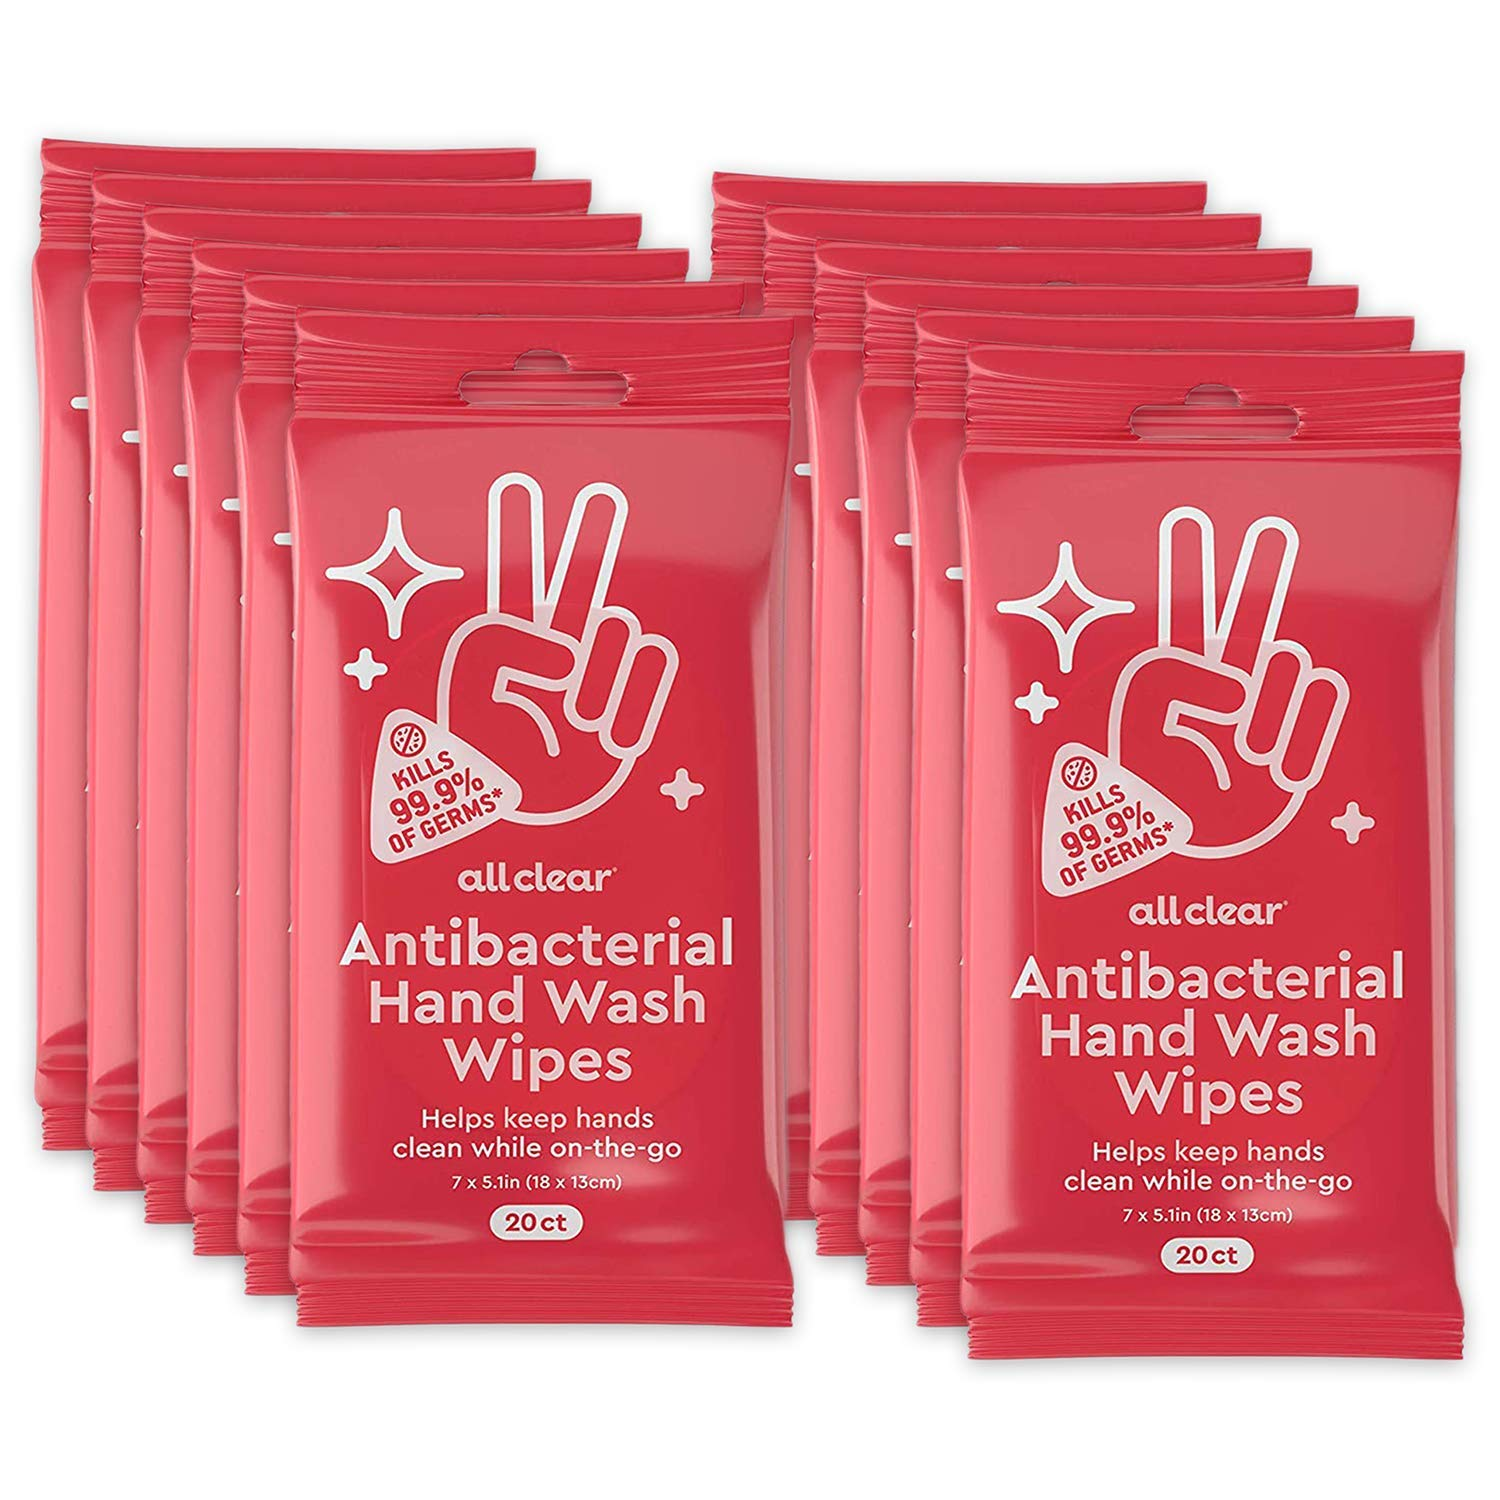 All Clear Antibacterial Hand Wash Wipes   20 Count (Pack of 12) 240 Total Hand Sanitizing Wipes